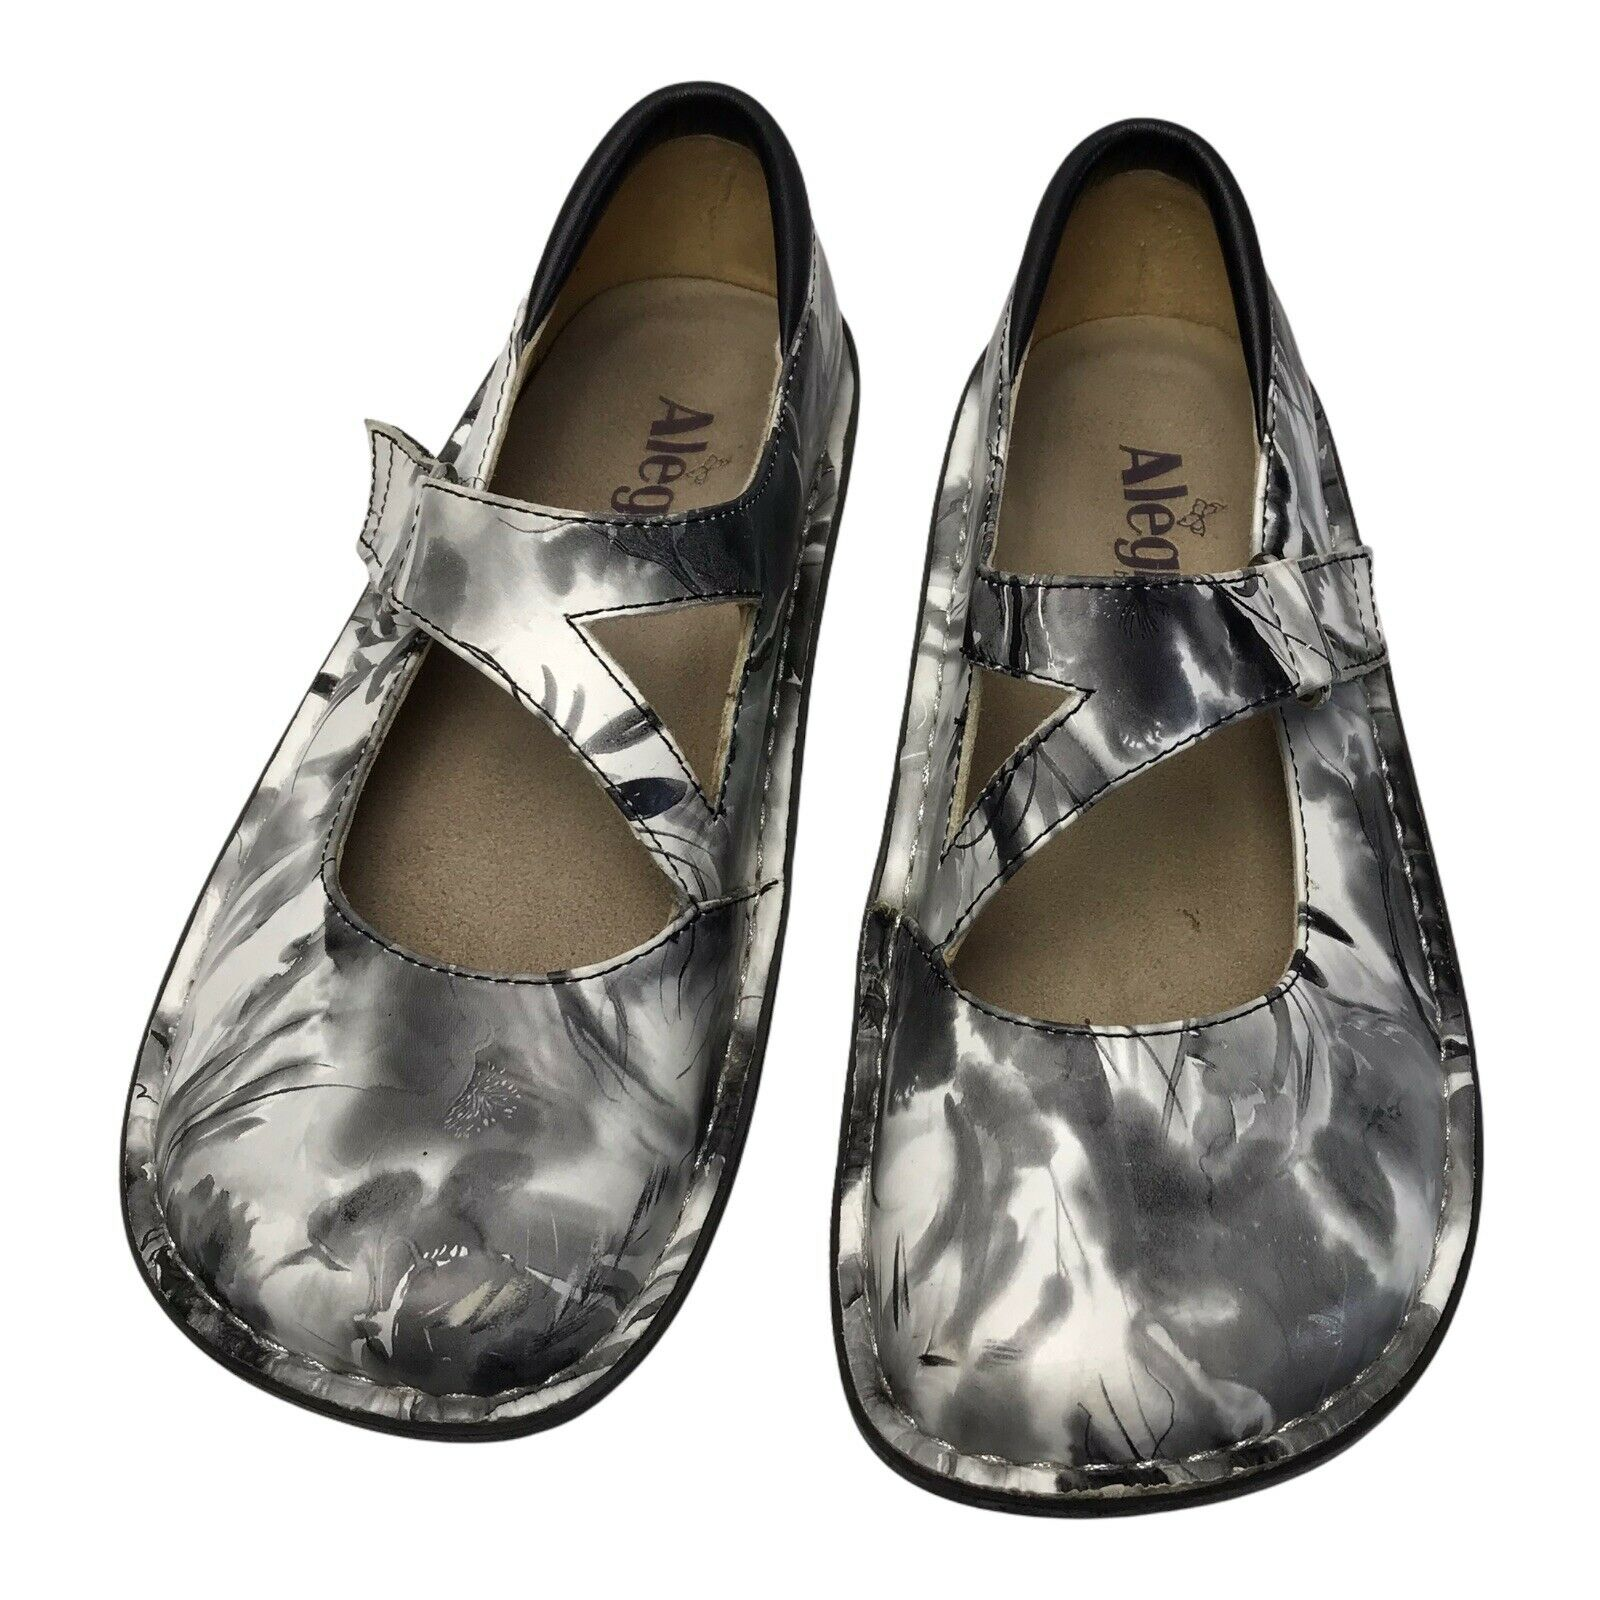 Alegria Dayna Day-366 Black/White Leather Shoes Size 5-5.5 Or Sz 35